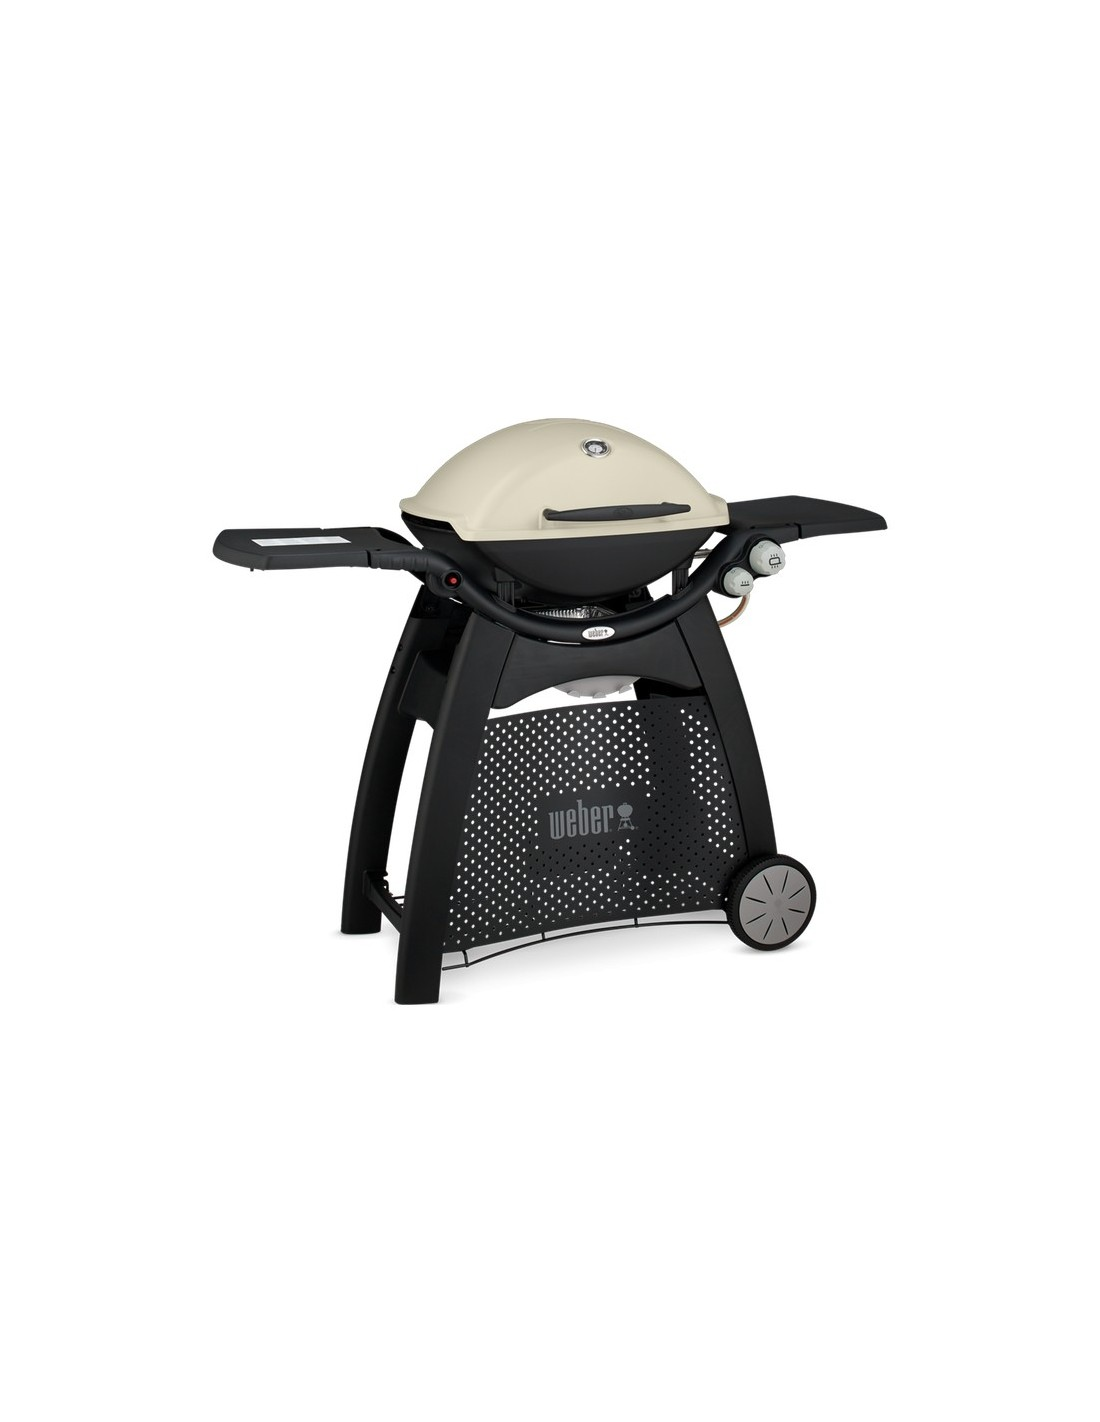 pack barbecue gaz q3000 titanium avec chariot et plancha 6506 weber. Black Bedroom Furniture Sets. Home Design Ideas